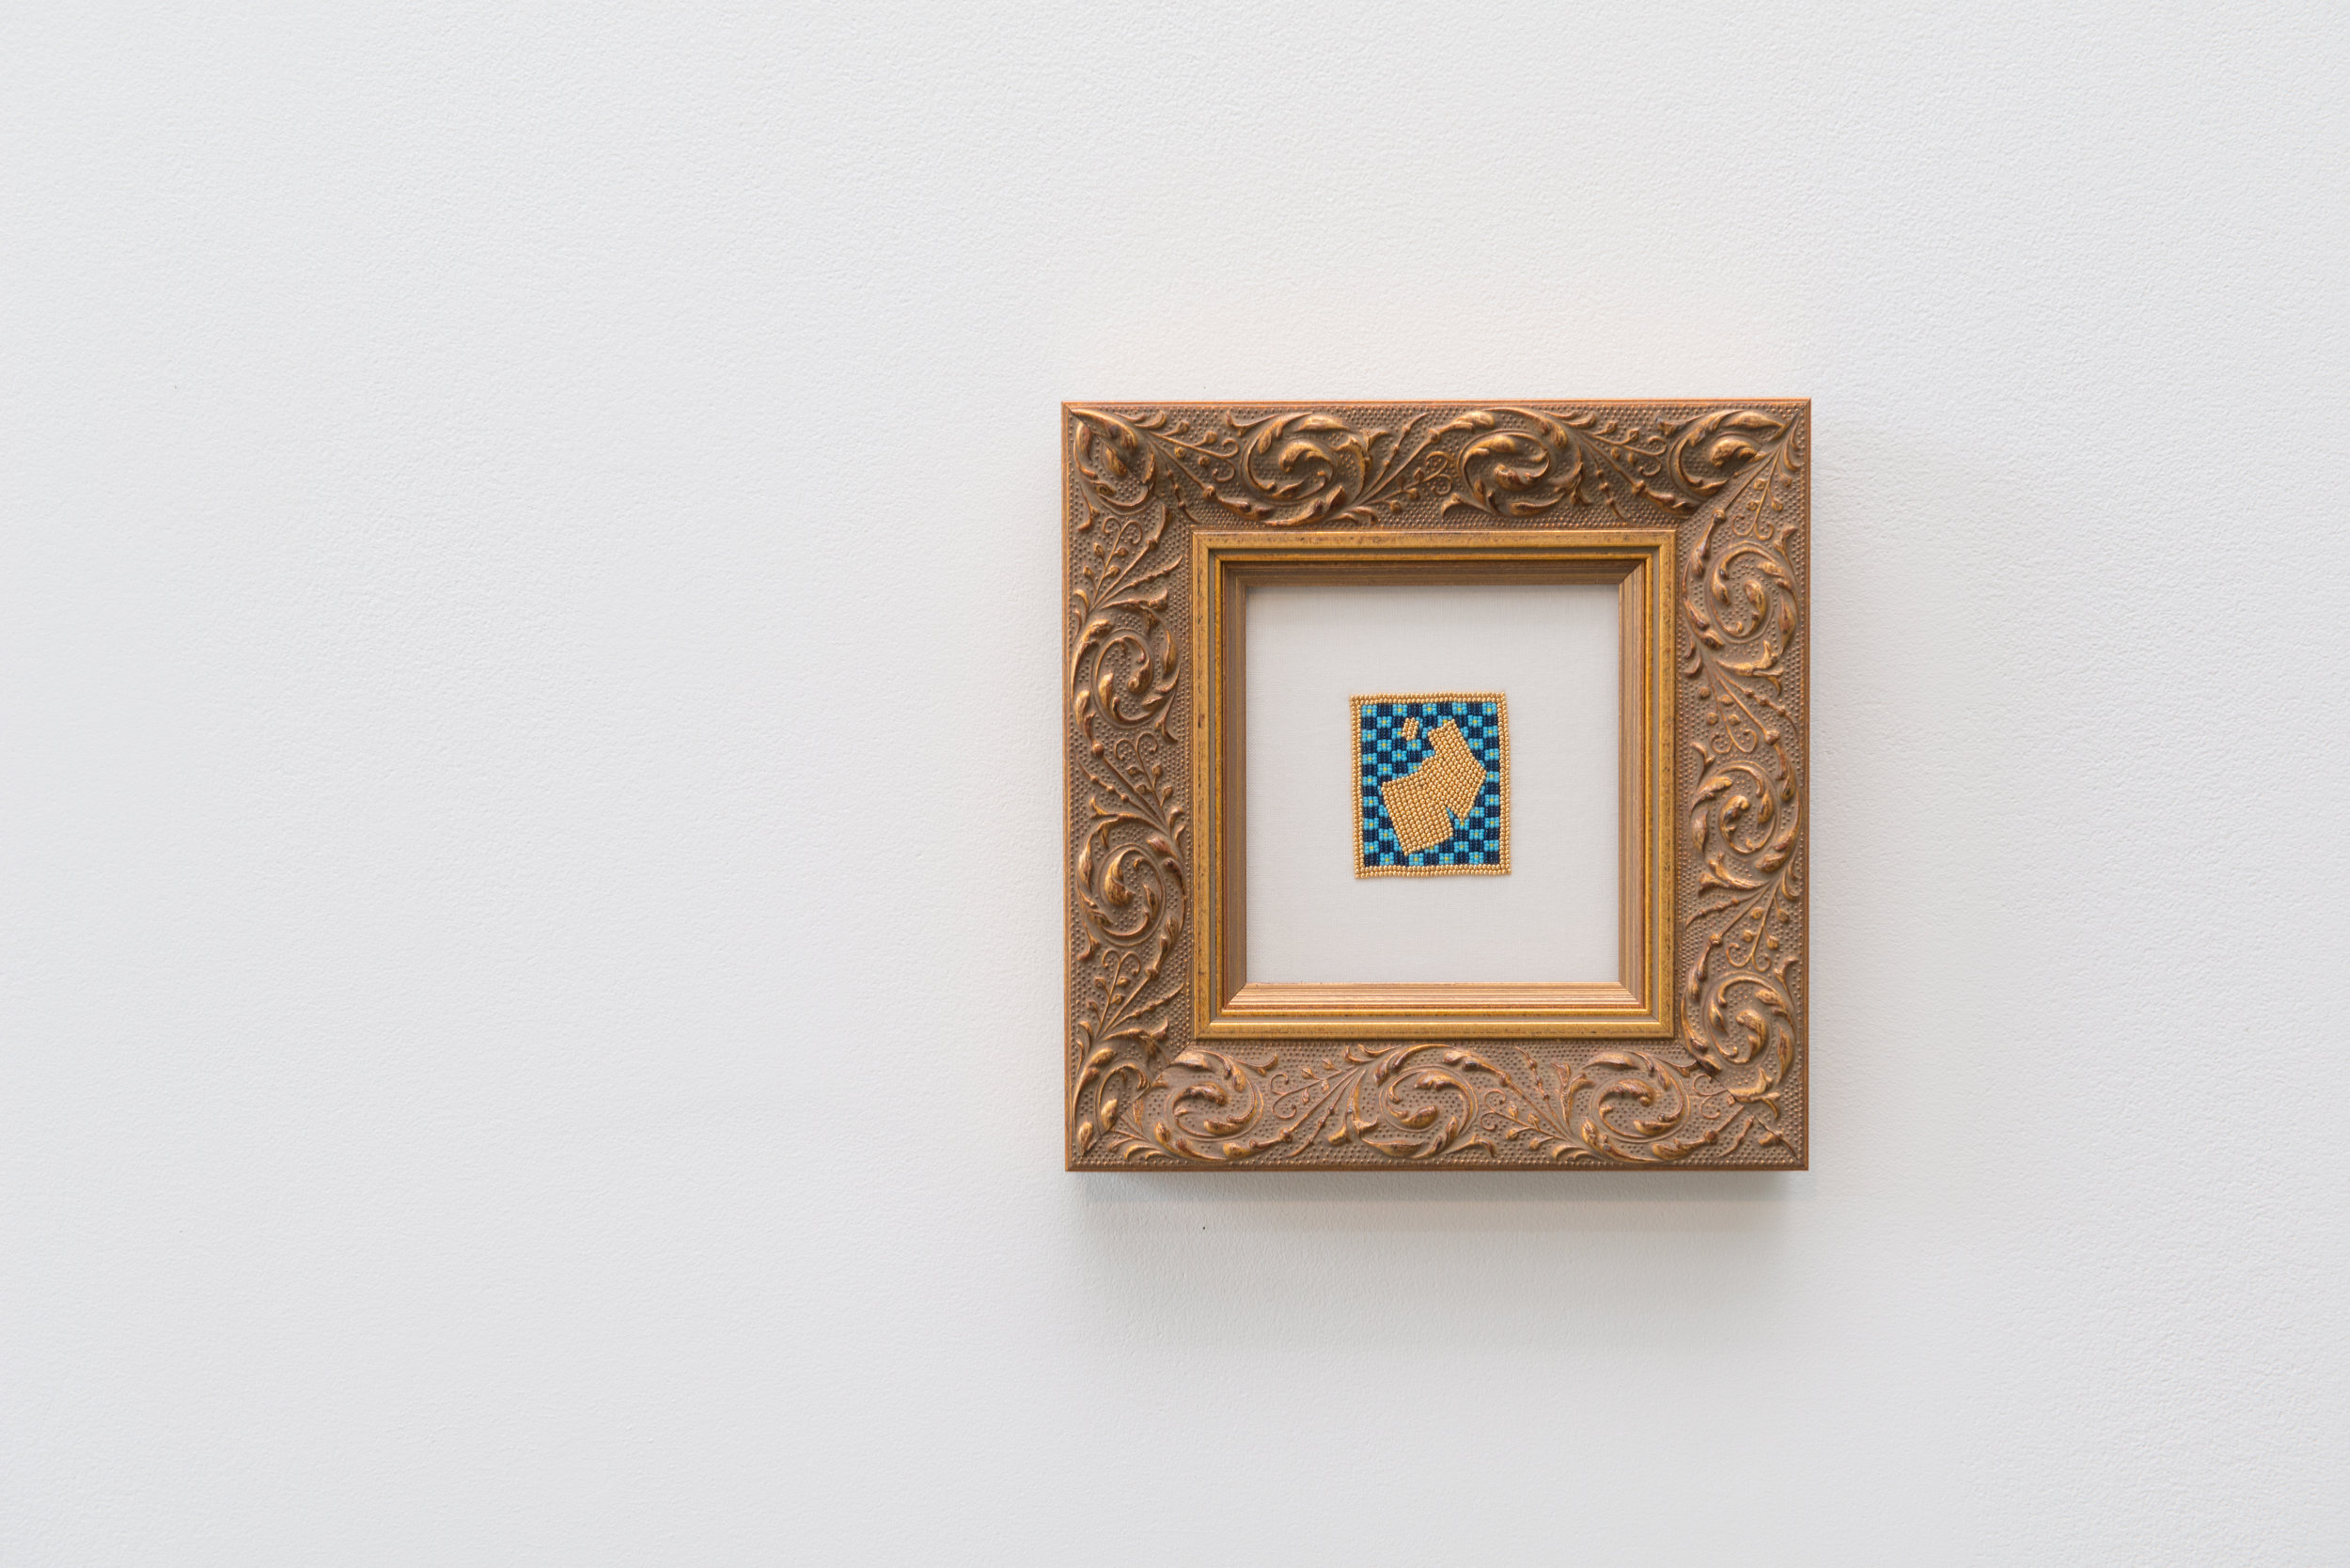 Capped Manuscript Illumination…Indigenized (J),  2016, 24K gold plated beads, glass beads, 3.8 x 4.8cm. In collaboration with Cruz Anderson. From the series  Family portrait,  2014-2017.